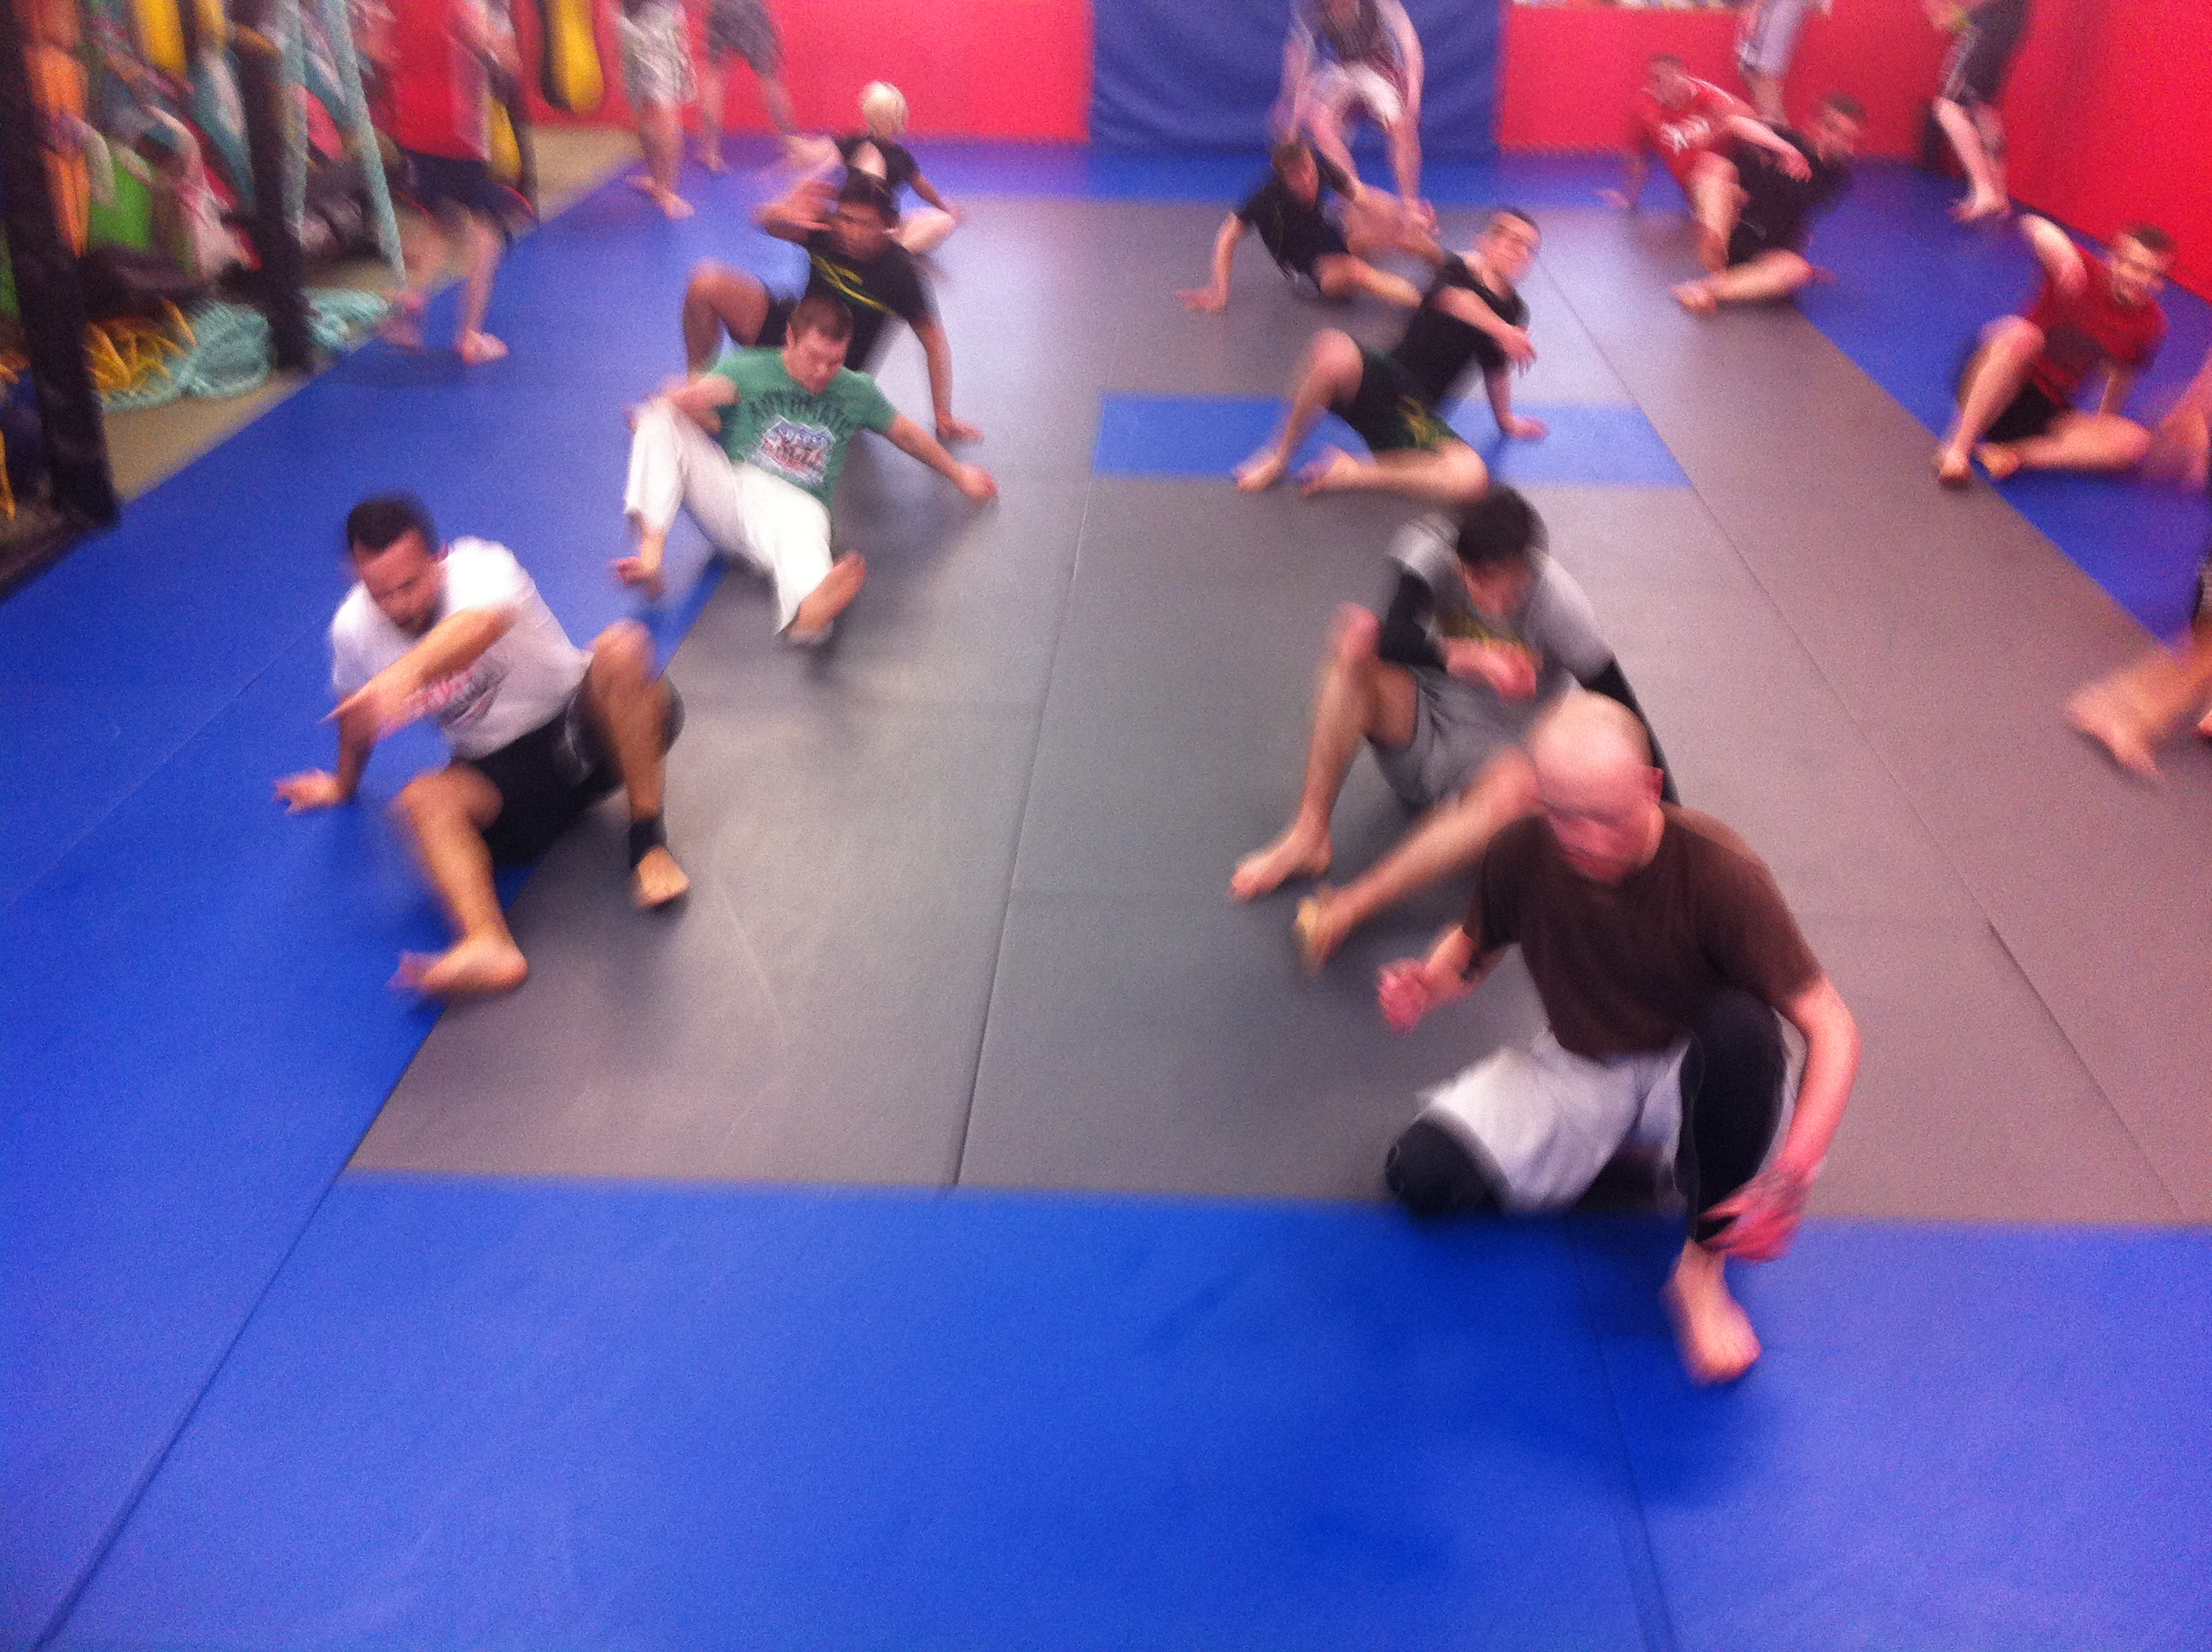 Warming Up with some mat mobility drills